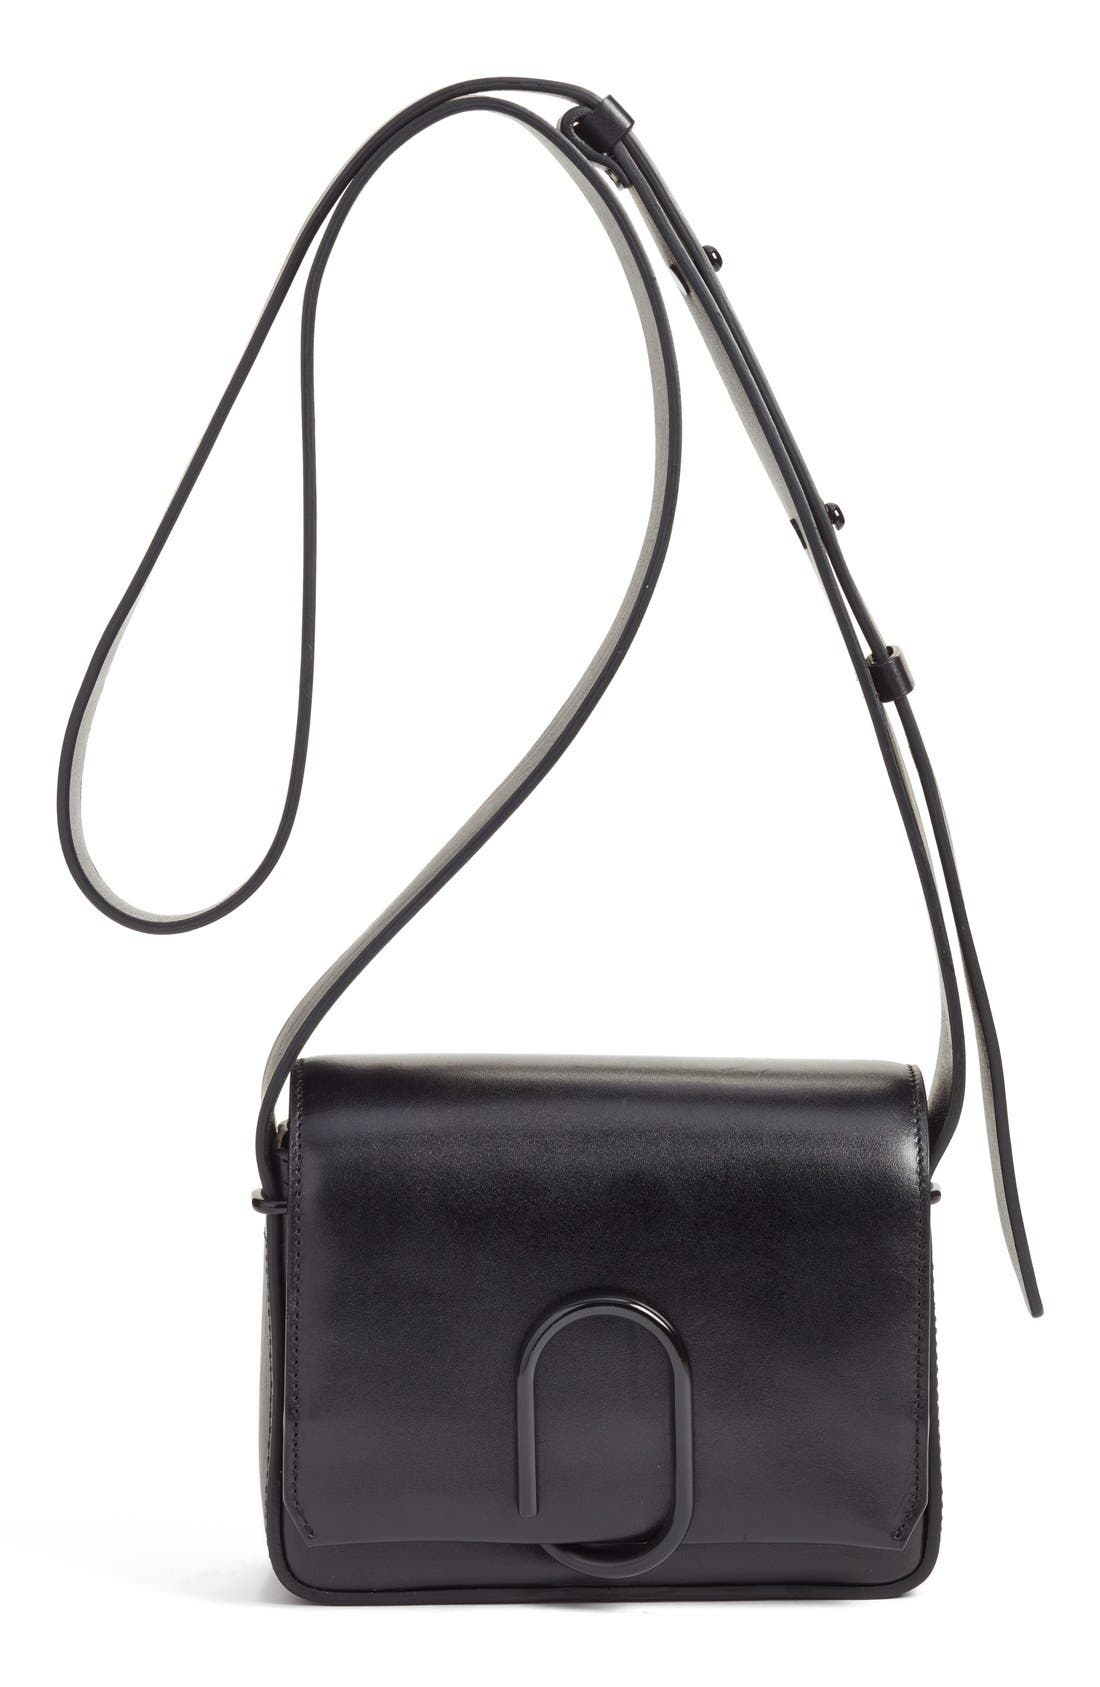 3.1 Phillip Lim 'Mini Alix' Leather Shoulder Bag